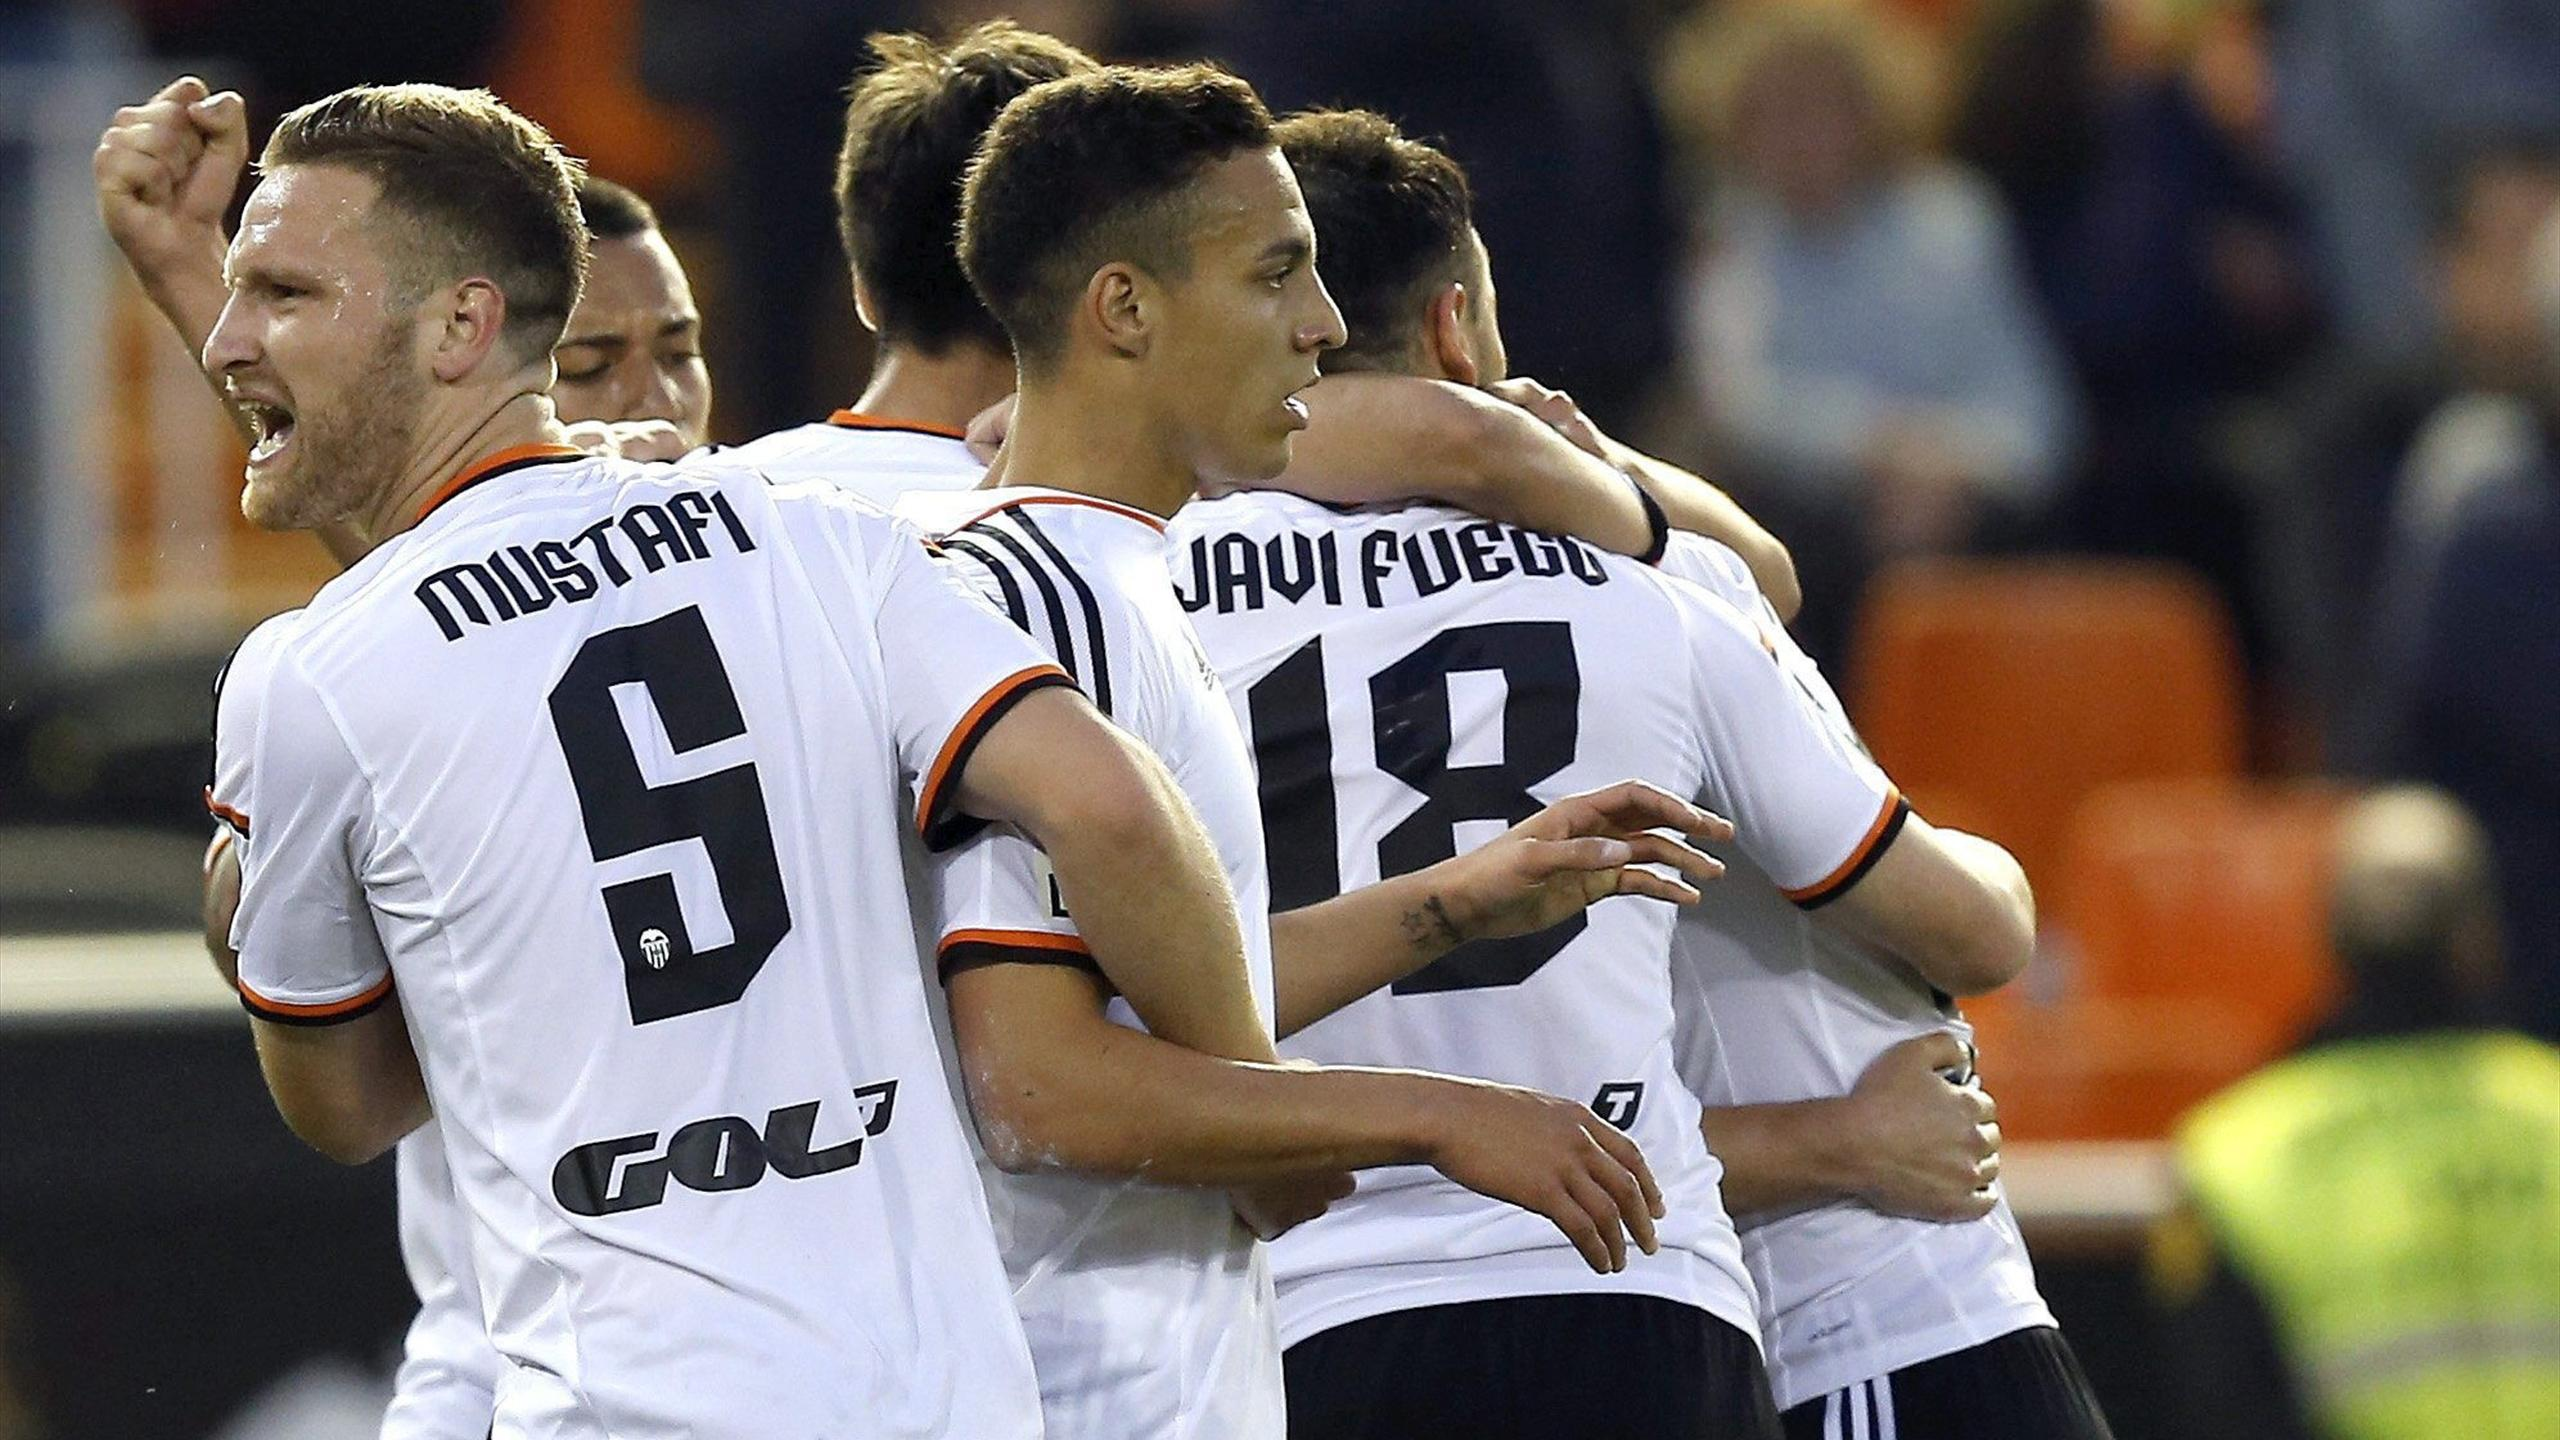 Video: Valencia vs Levante